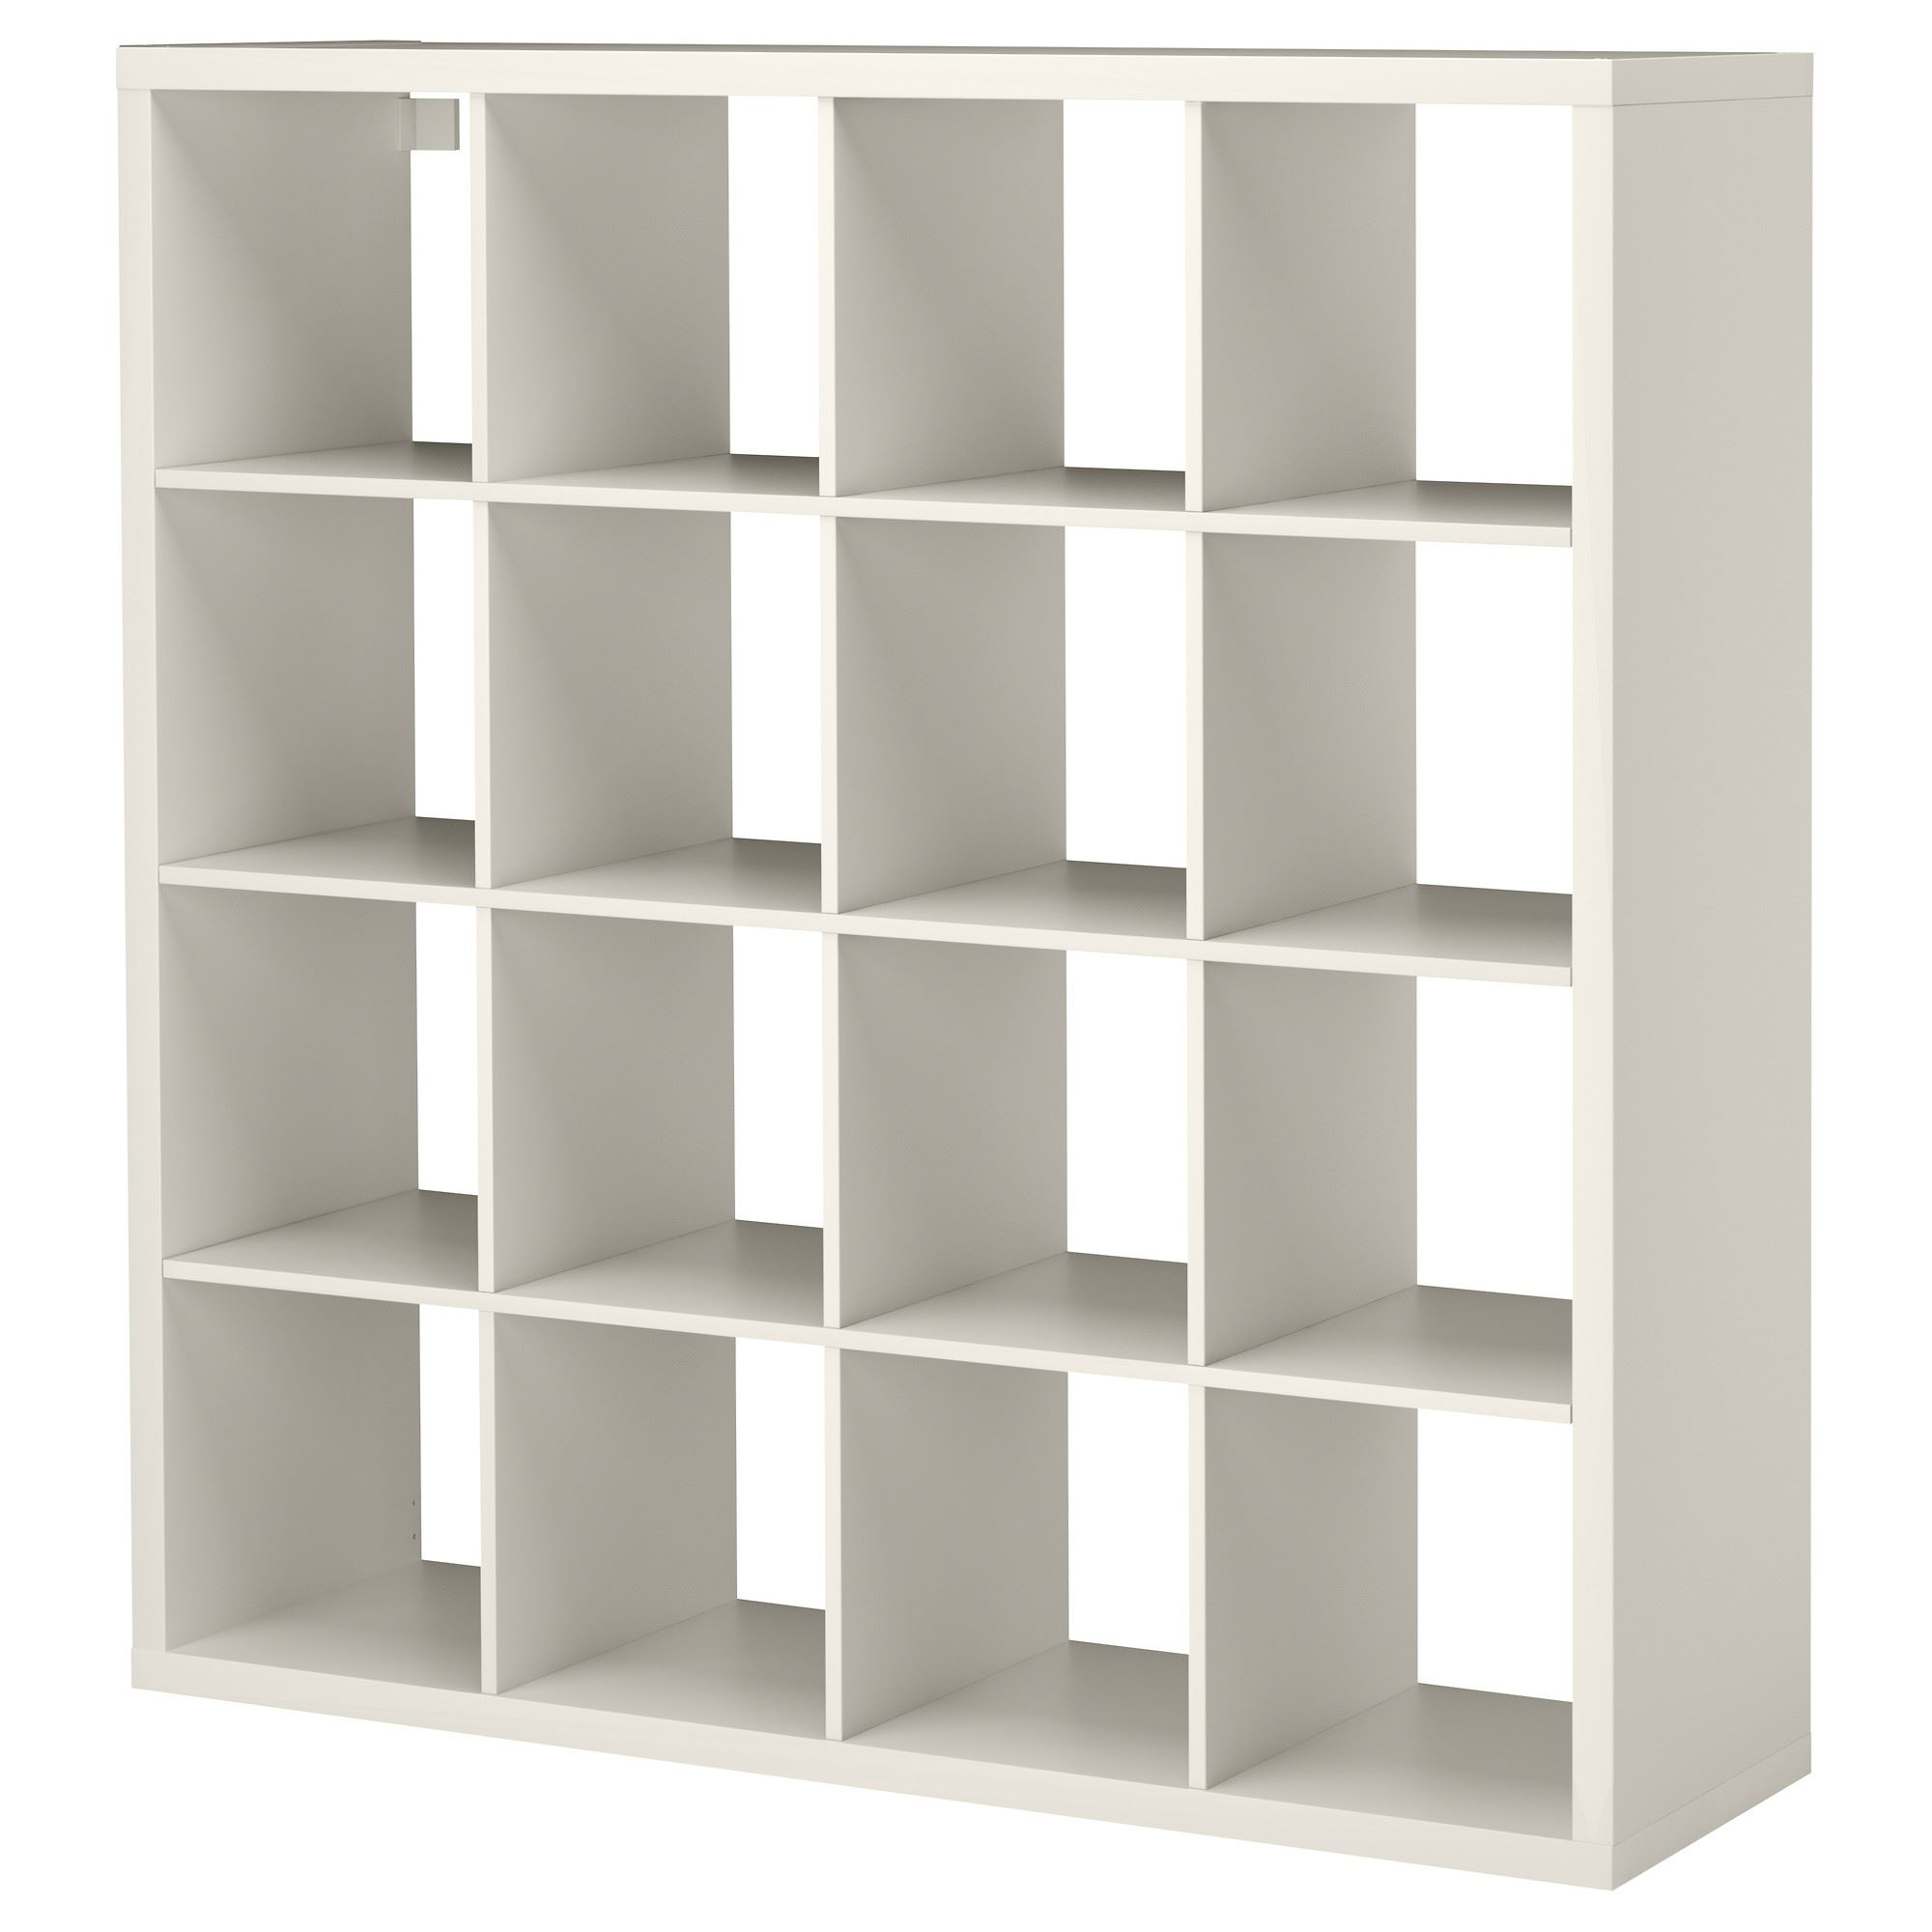 Regal ikea kallax  KALLAX shelving unit with 16 compartments white 147x39x147 cm ...